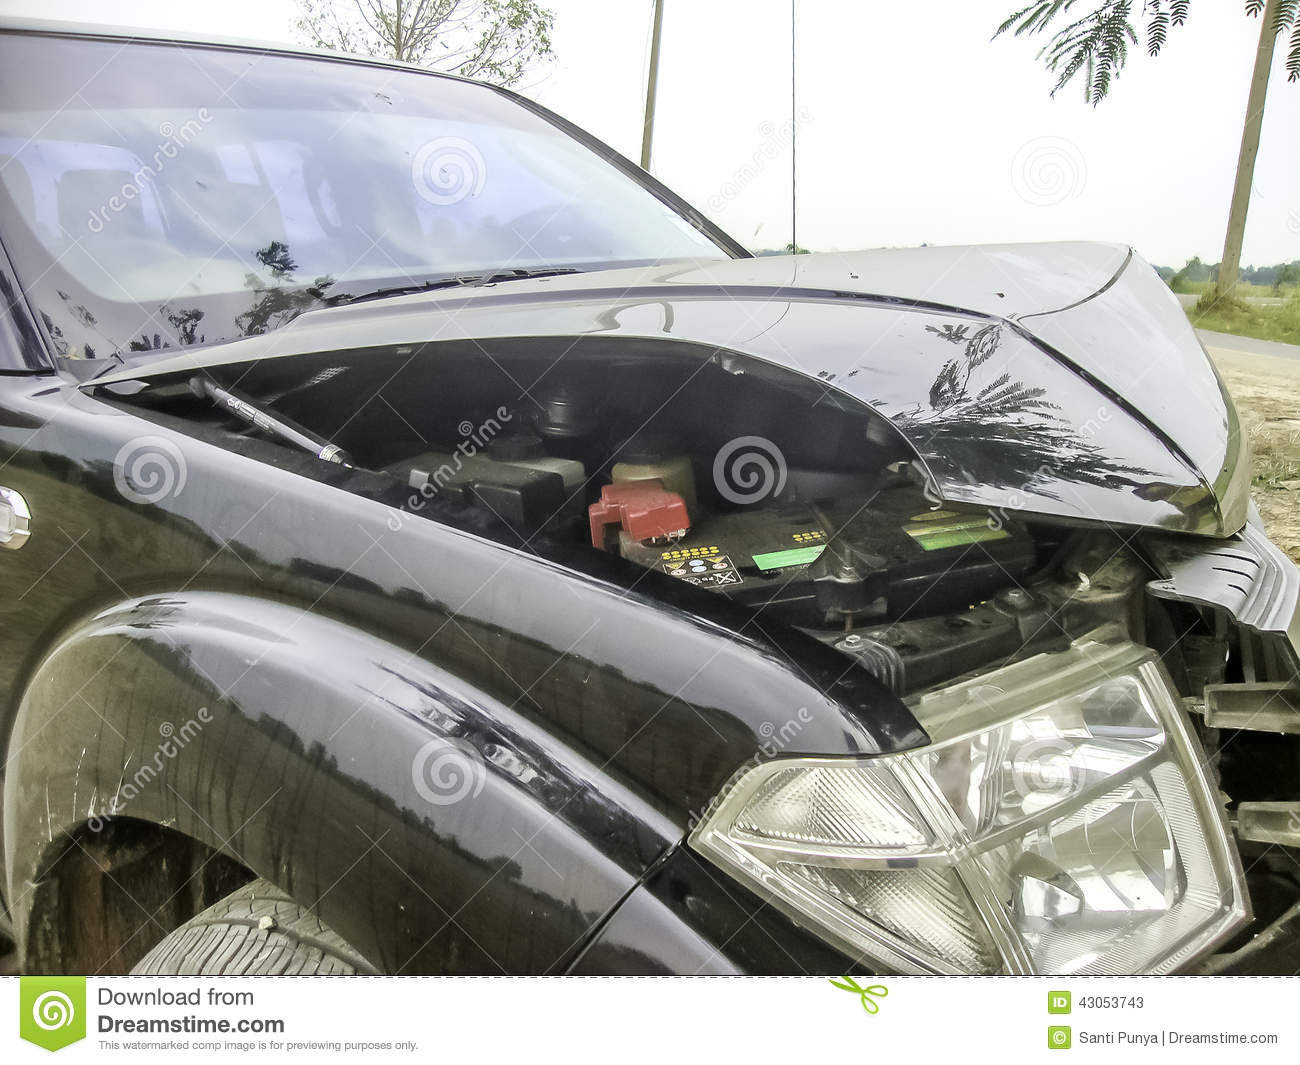 Car Accident Stock Photo - Image: 43053743